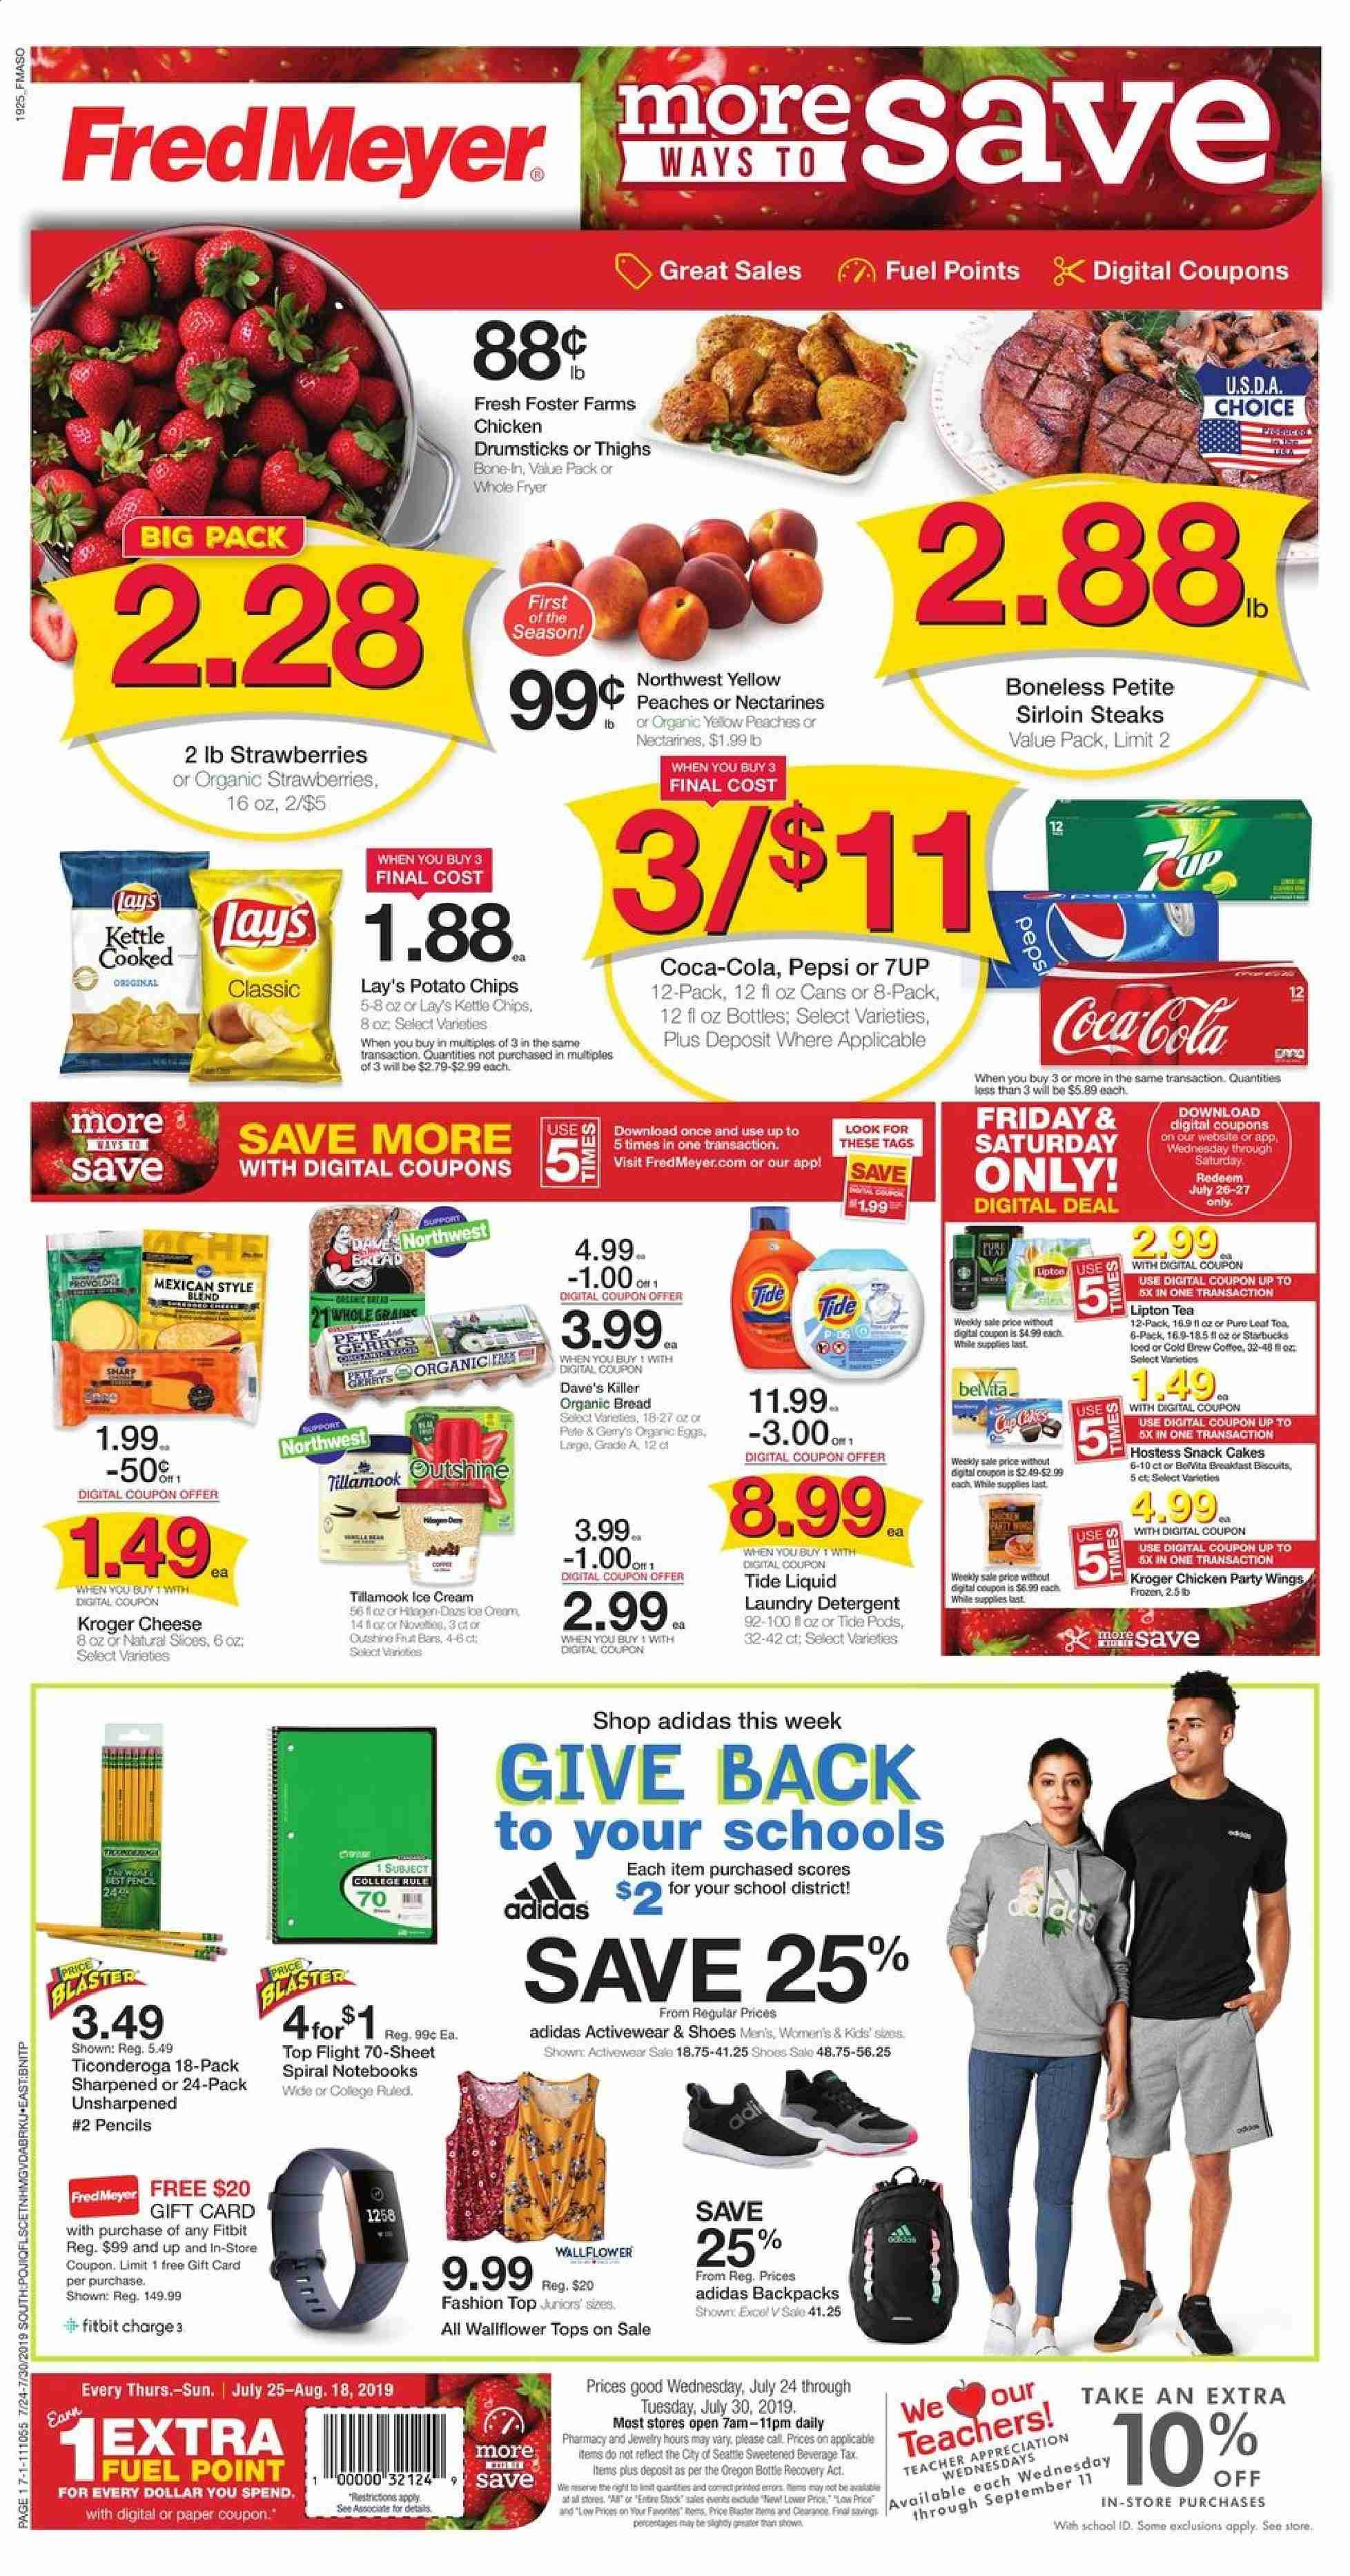 Fred Meyer Flyer - 07.24.2019 - 07.30.2019 - Sales products - nectarines, strawberries, bread, cake, cheese, eggs, potato chips, chips, snack, Lay's, Coca-Cola, Pepsi, Lipton, tea, coffee, chicken, chicken legs, detergent, Tide, laundry detergent, Adidas, Frozen, Sharp, paper, pencil, sheet, Fitbit, fuel, cream, puro. Page 1.